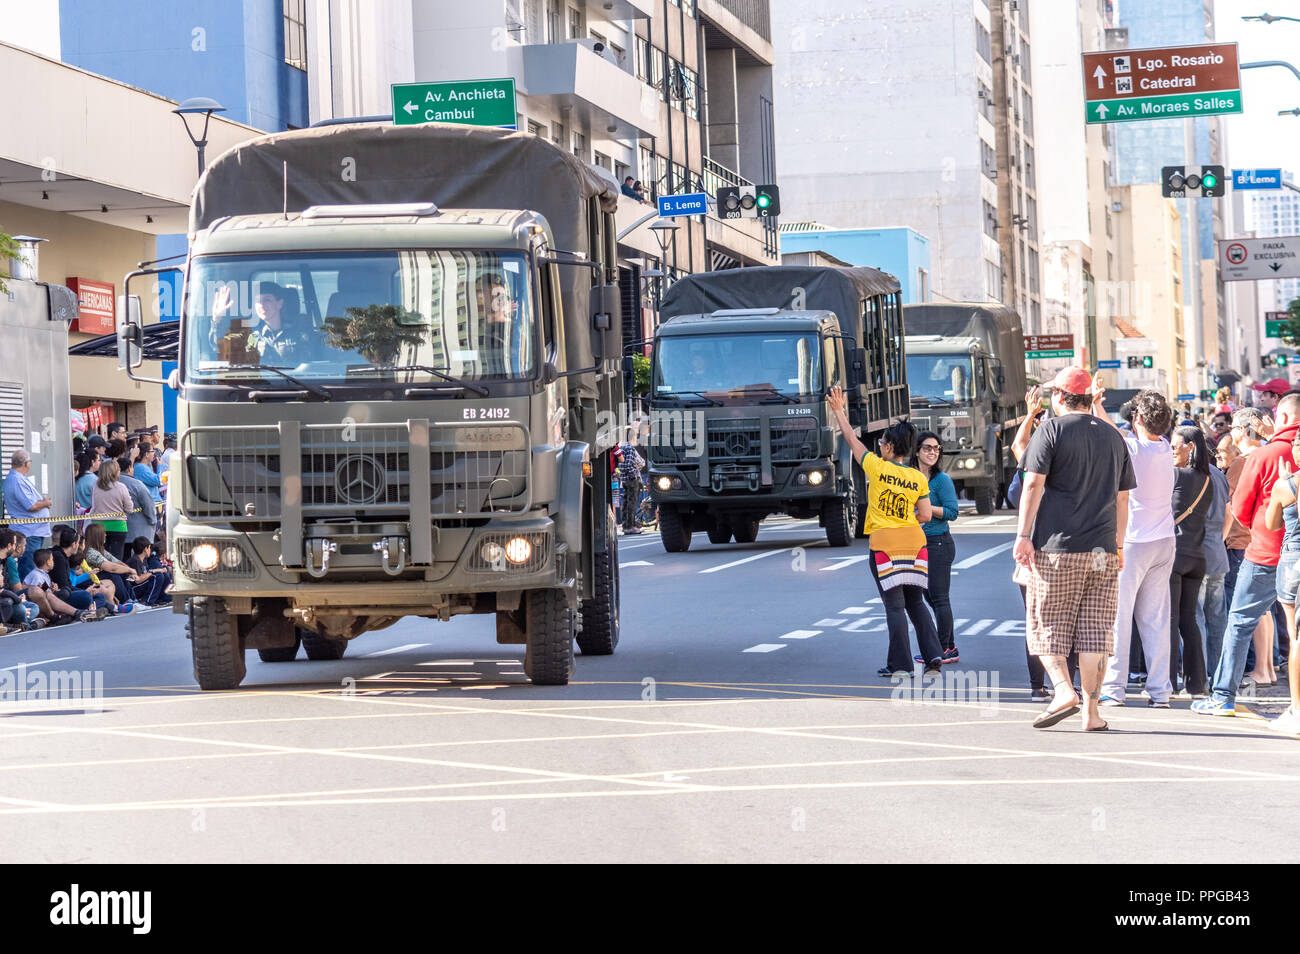 Campinas/ SP/ Brazil - September 7, 2018: Army's car in the Brazilian independence day parade celebration - Stock Image